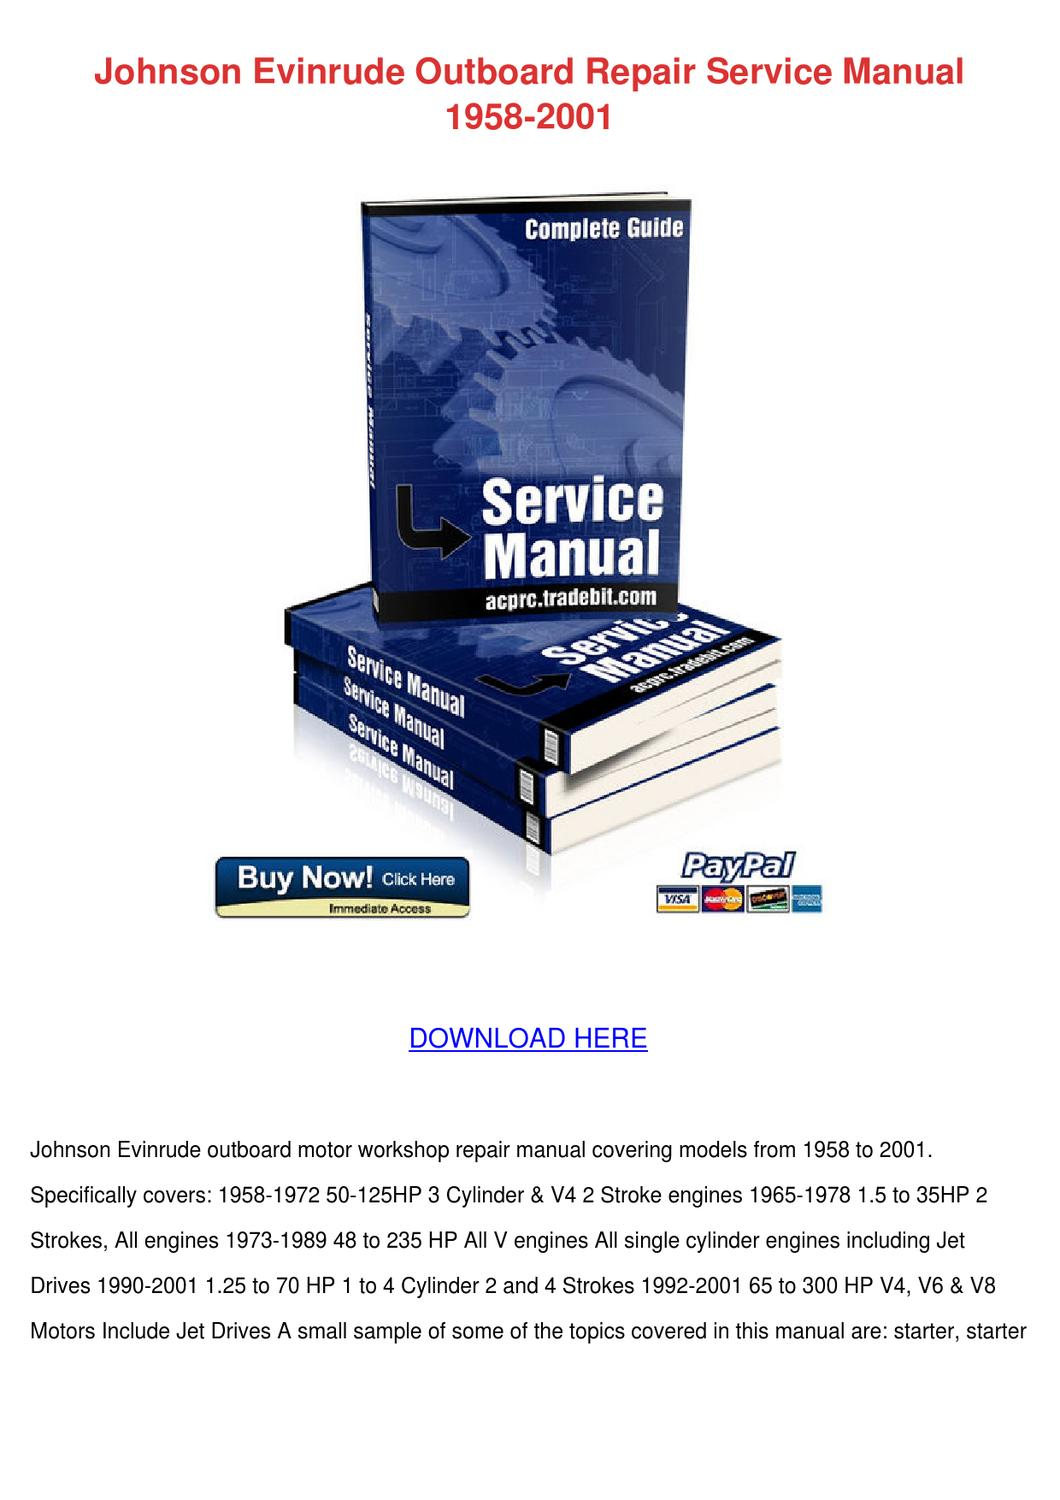 Selva montecarlo manual array johnson evinrude outboard repair service manu by sherika blanchfield rh issuu com fandeluxe Choice Image